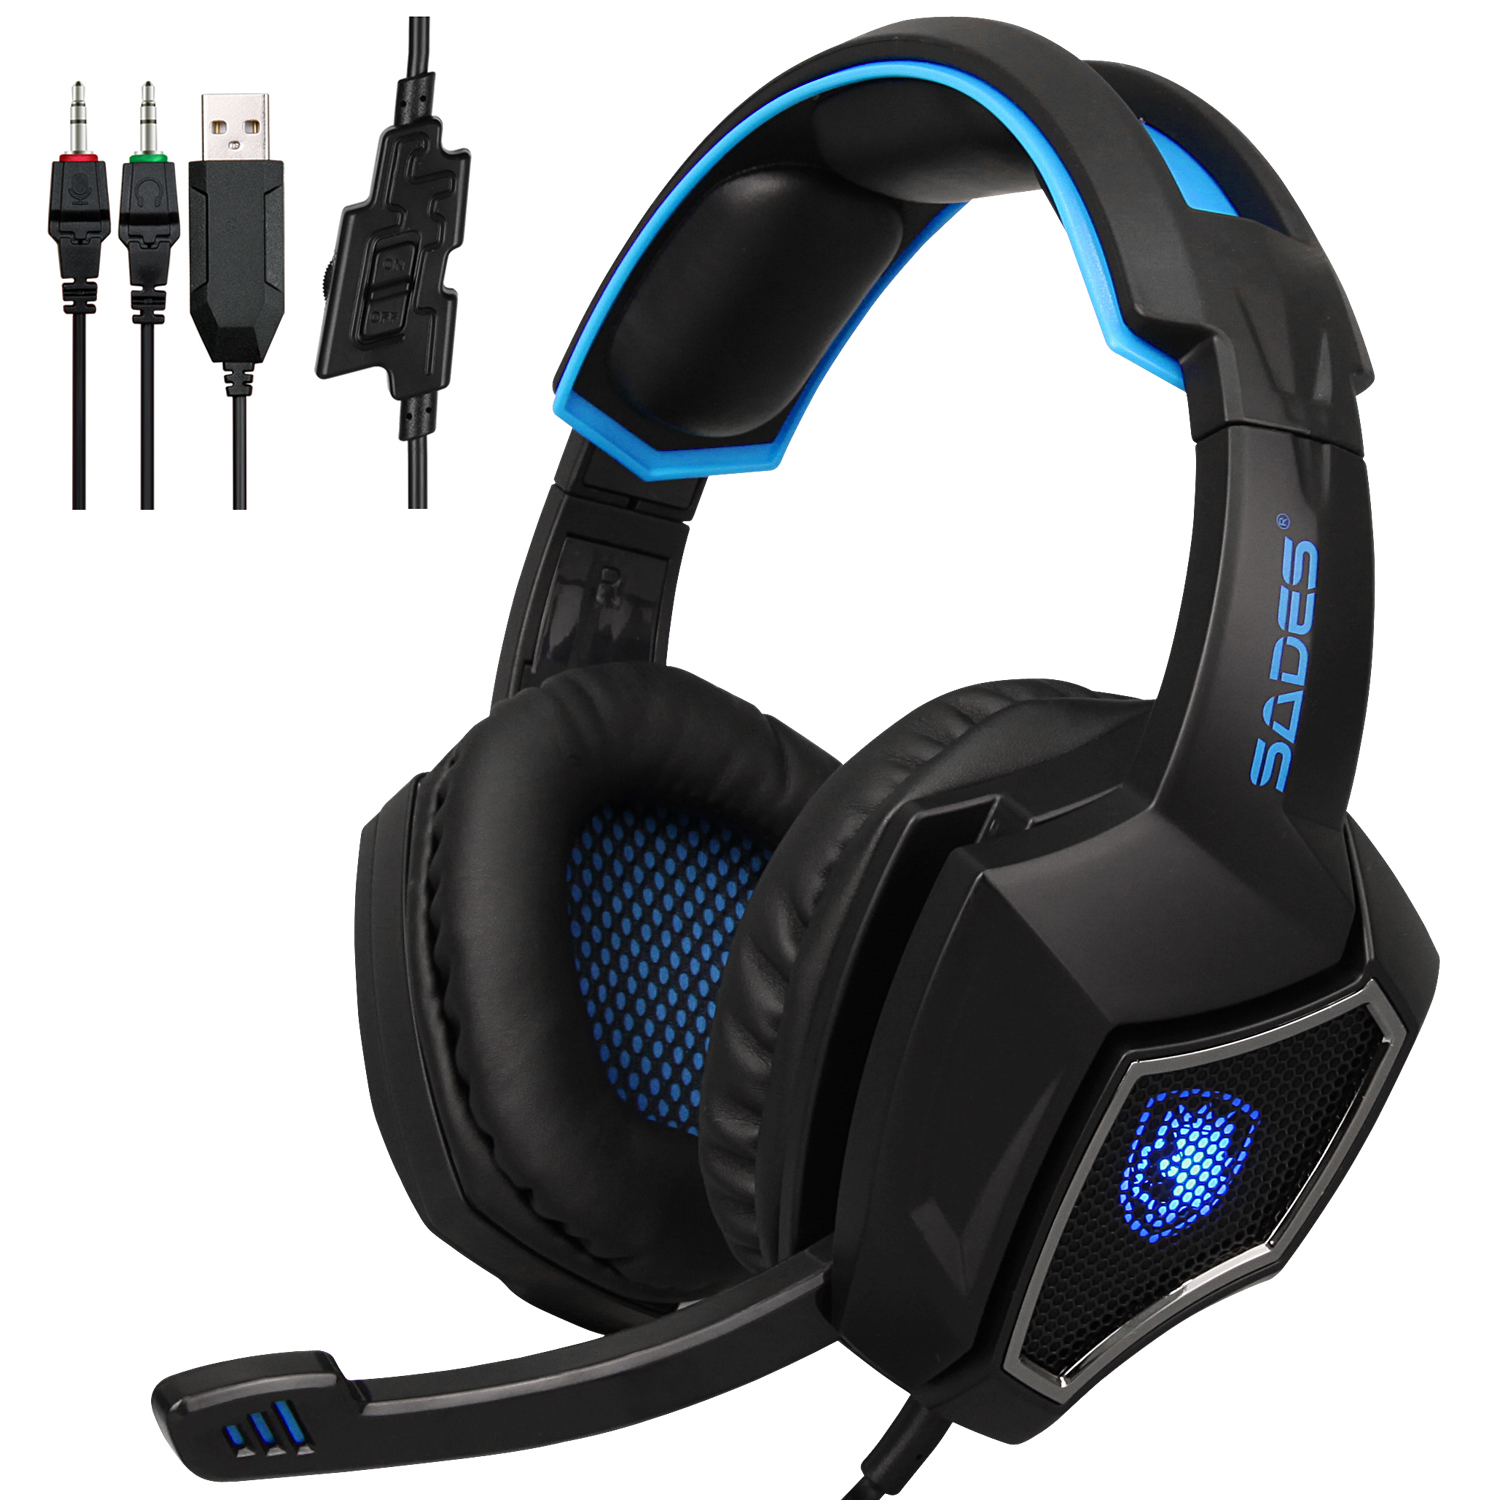 60034 03. sades spirit wolf gaming headset headphone w mic stereo hifi Headphone with Mic Wiring Diagram at creativeand.co